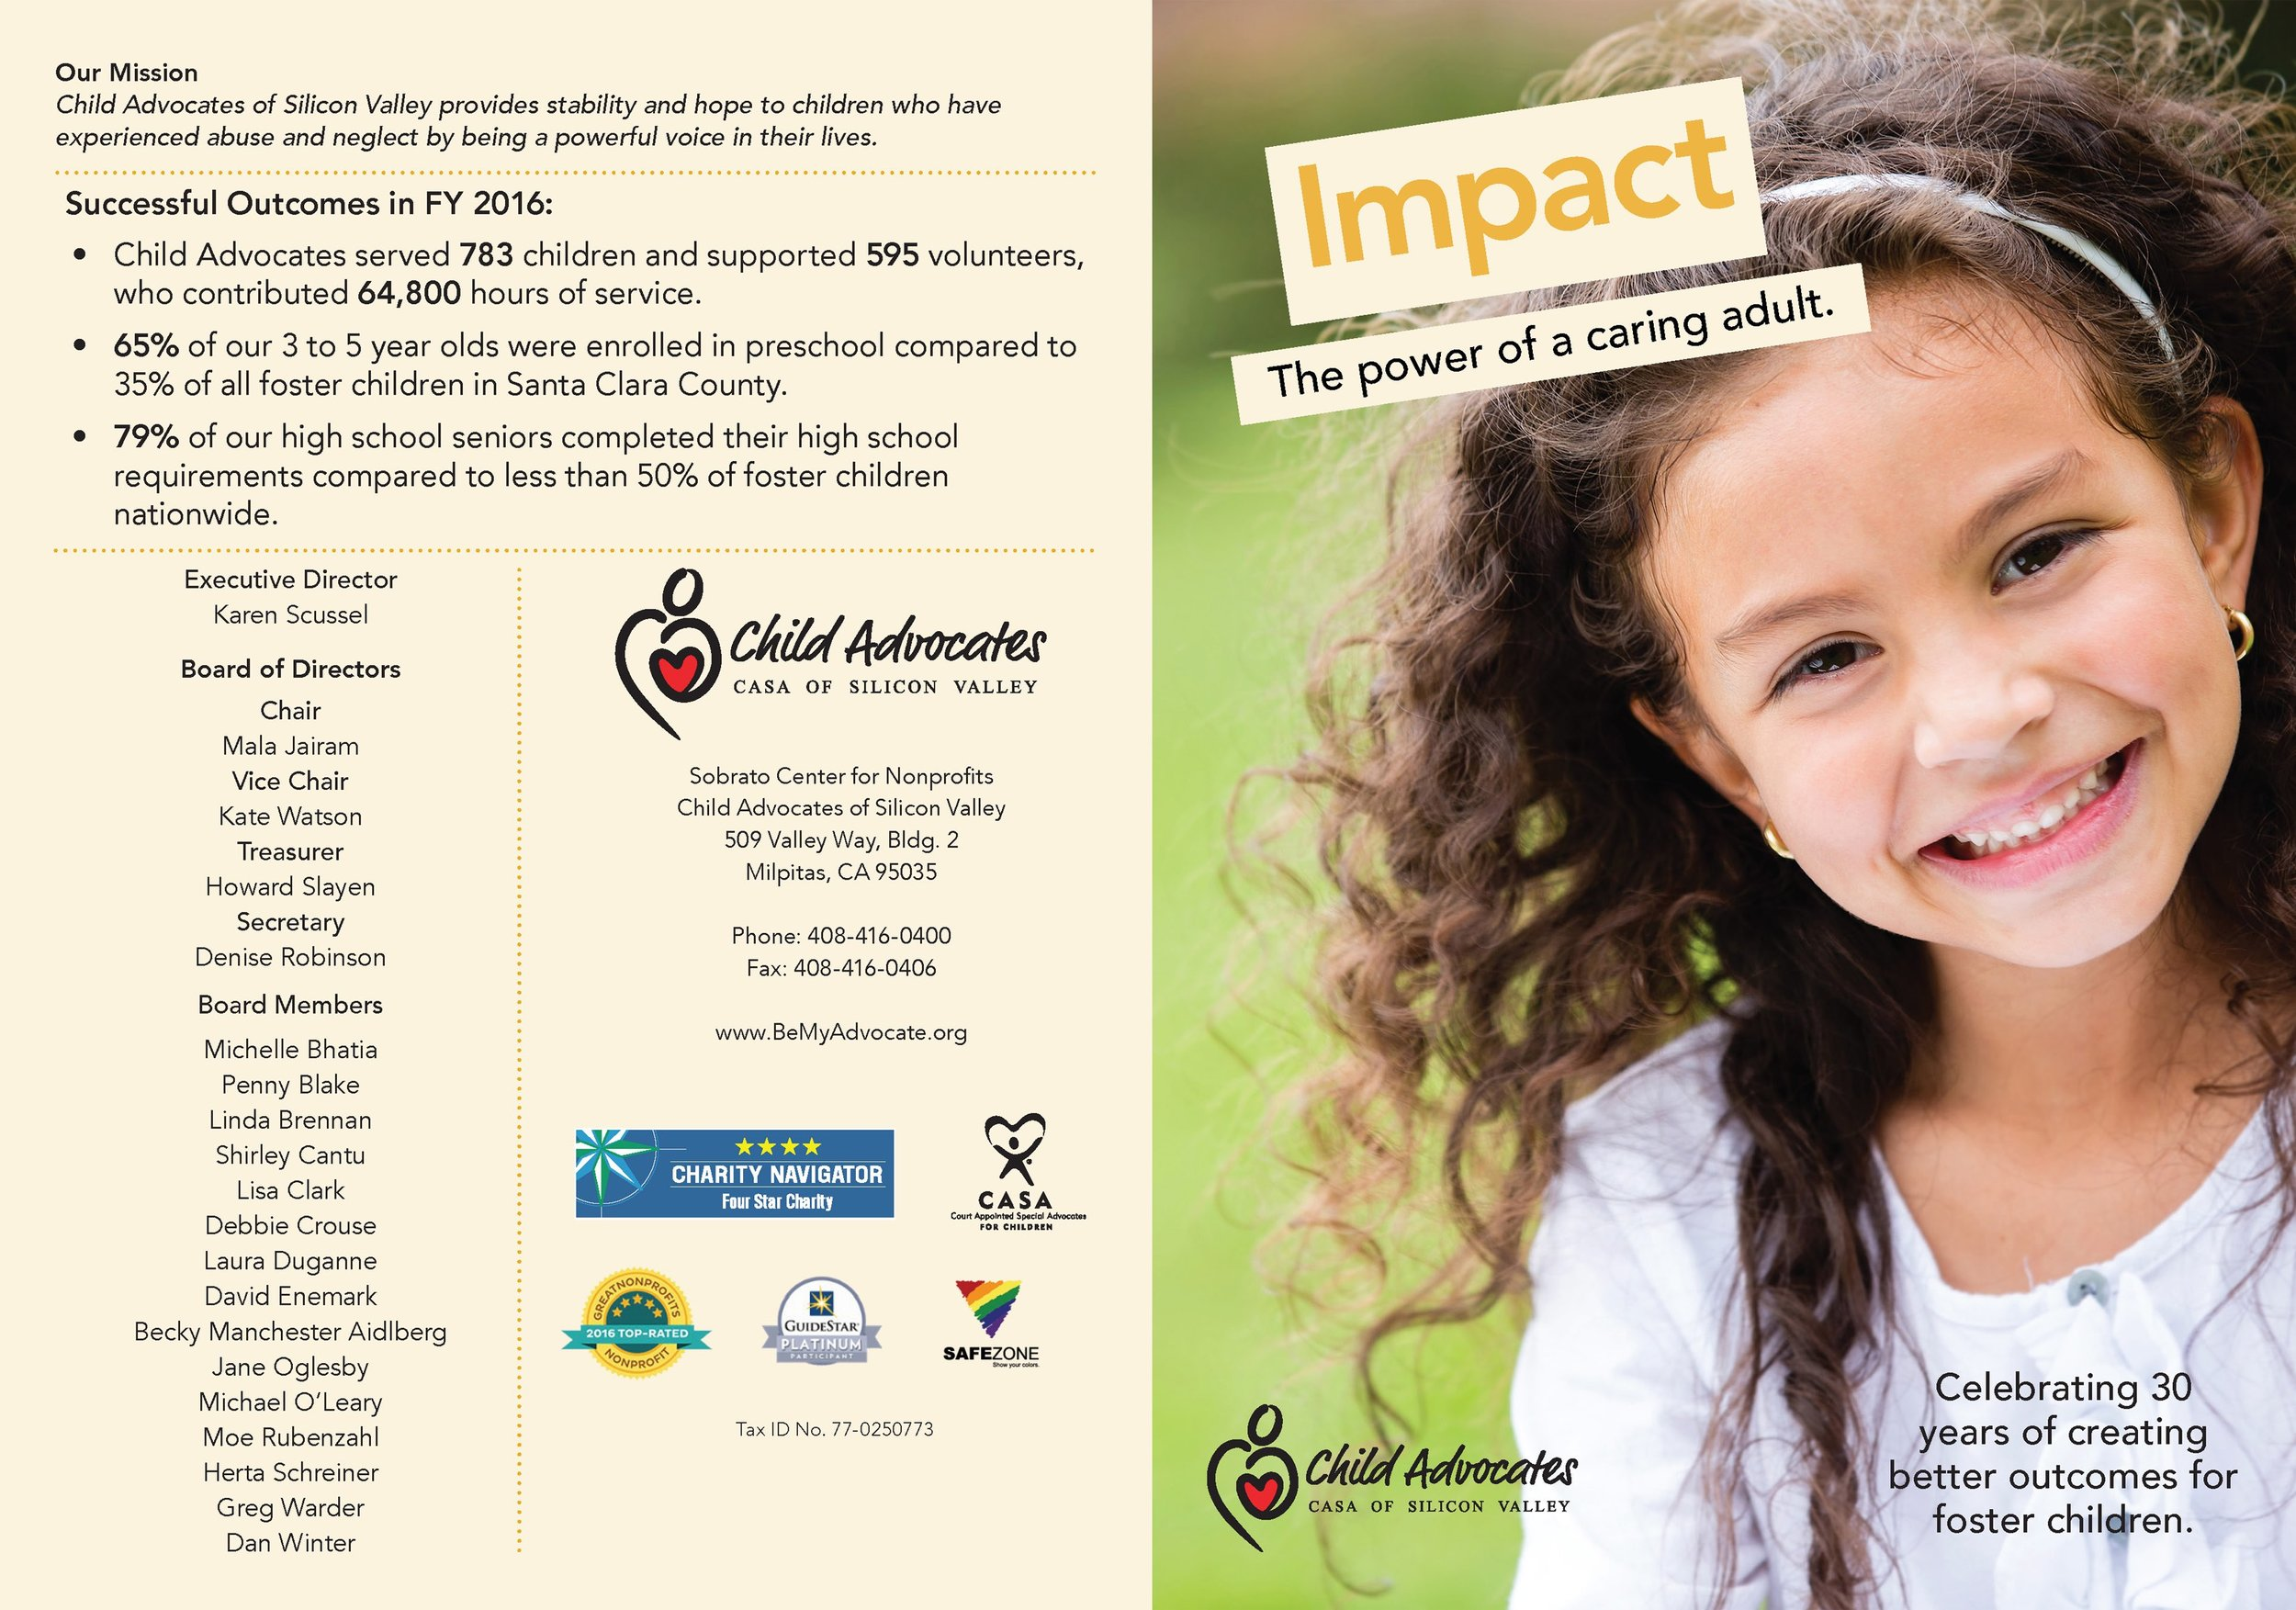 CASA Fall Appeal Card  Outside spread, pages 4 and 1